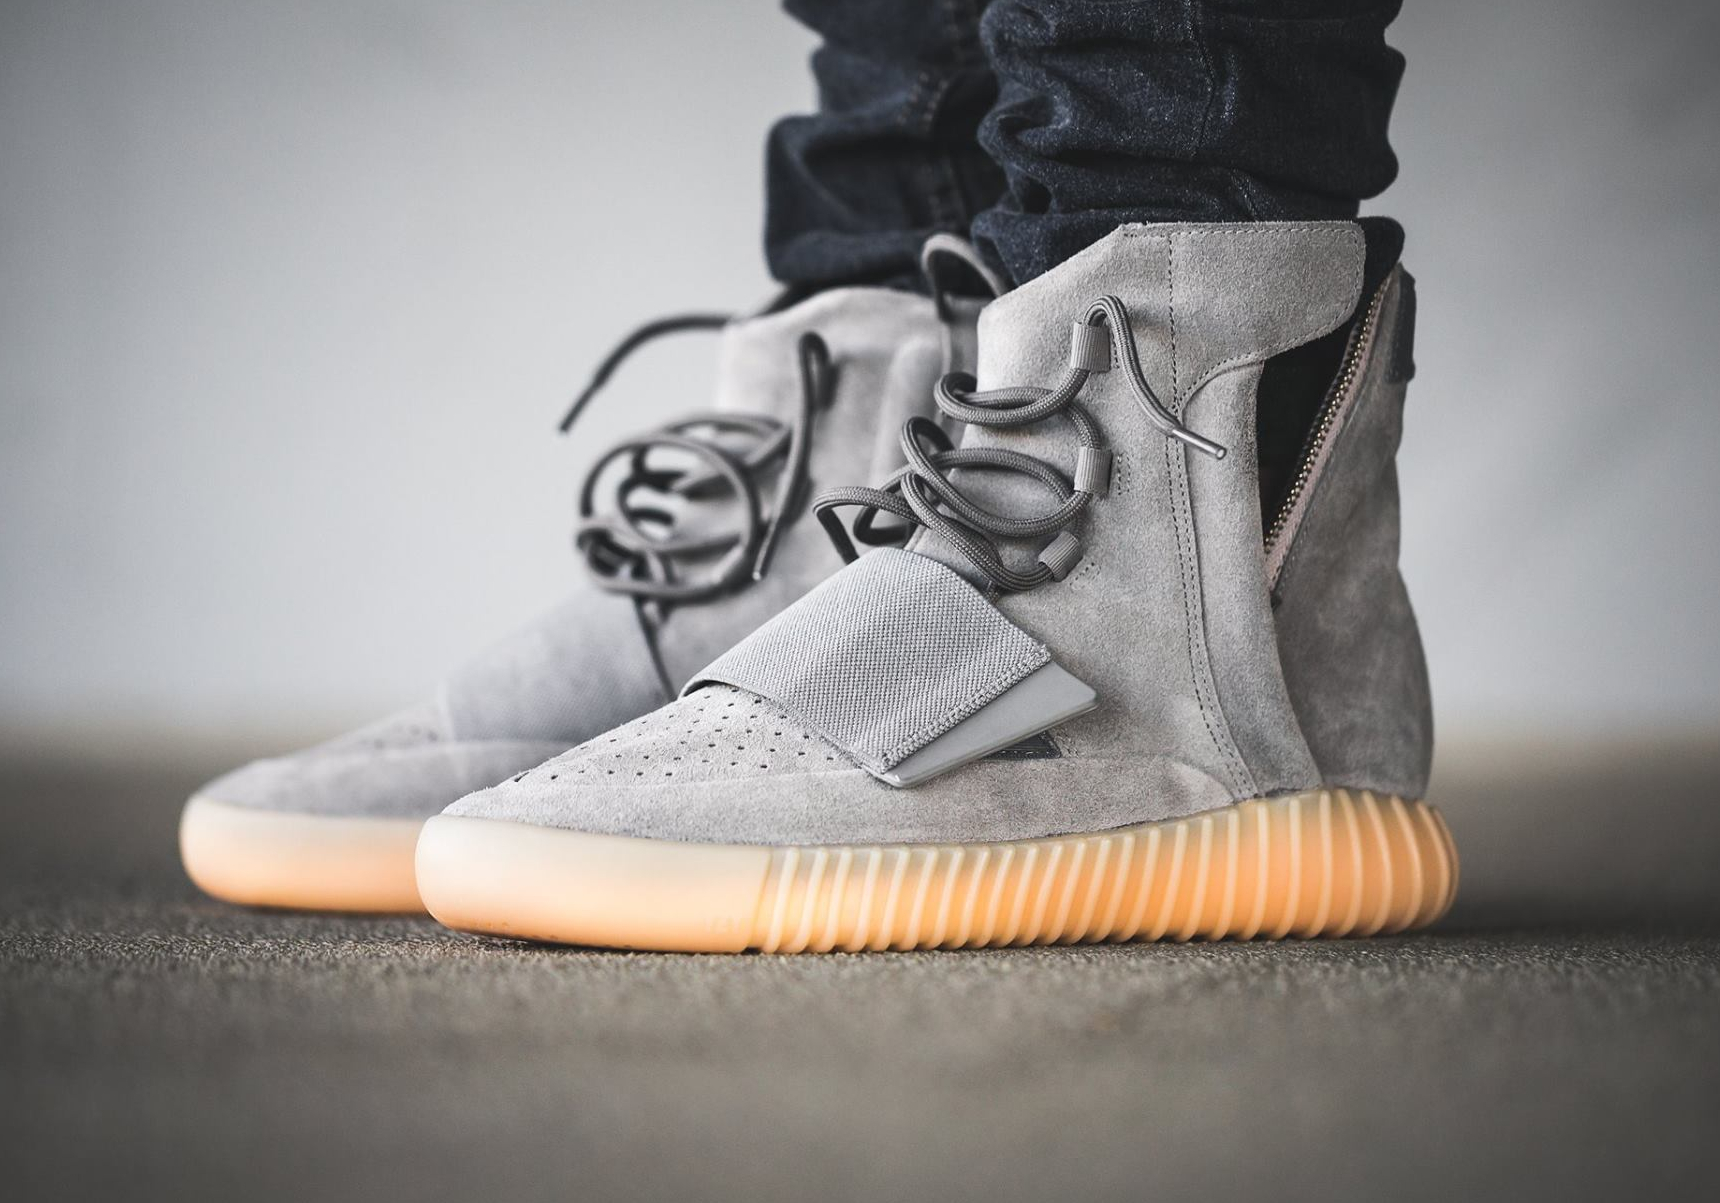 acheter basket Kanye West x Adidas Yeezy 750 Boost 'Grey Gum' (glow in the dark) (5)